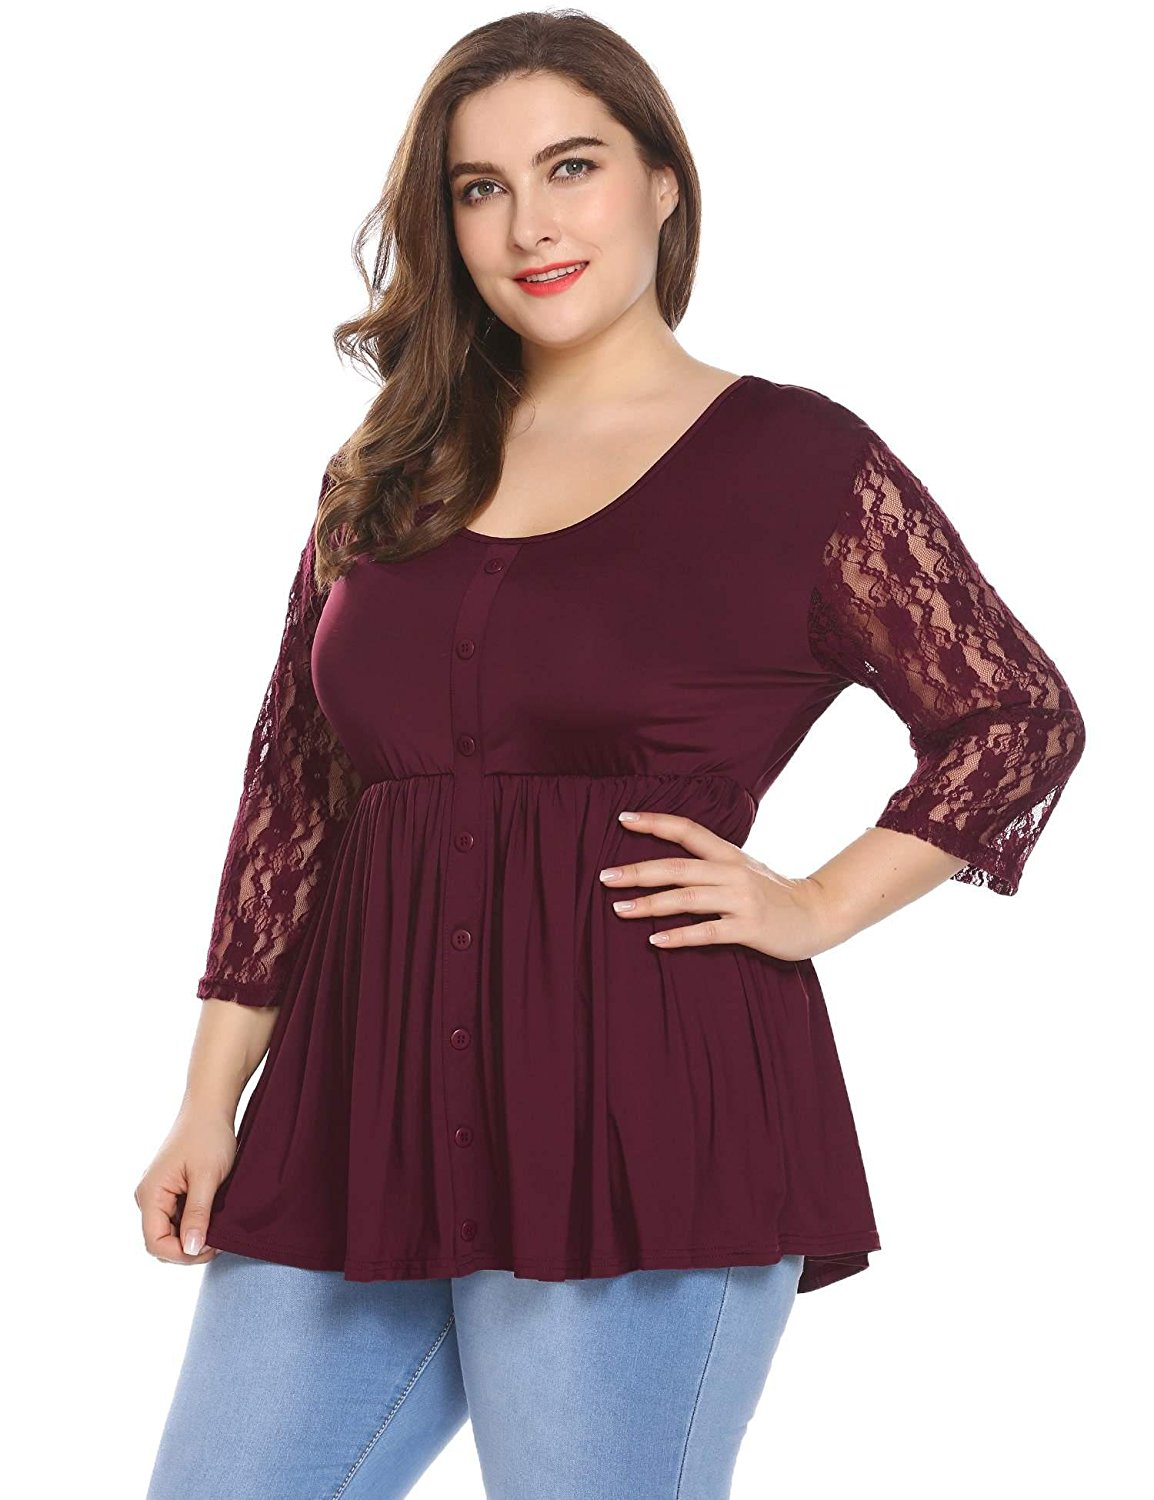 Zeagoo Womens Plus Size Casual T Shirt 3/4 Sleeve Round Neck Loose Tunic Tops Lace Patchwork Blouse